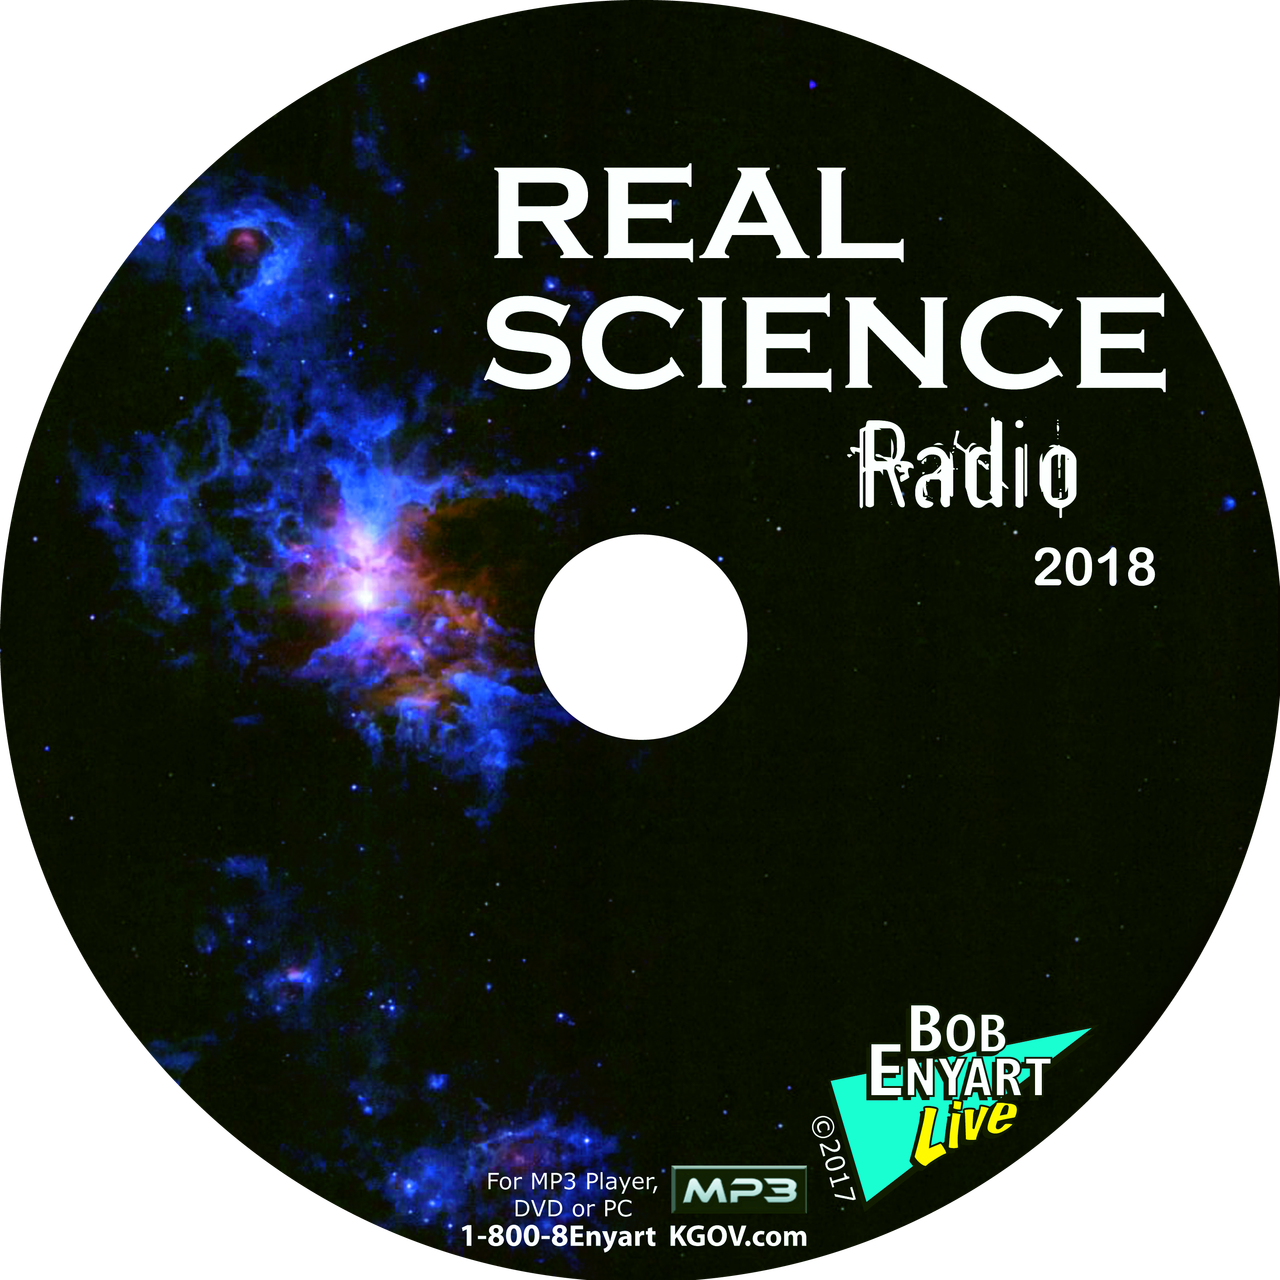 Real_Science_Radio_2018__45662.1552098175.png